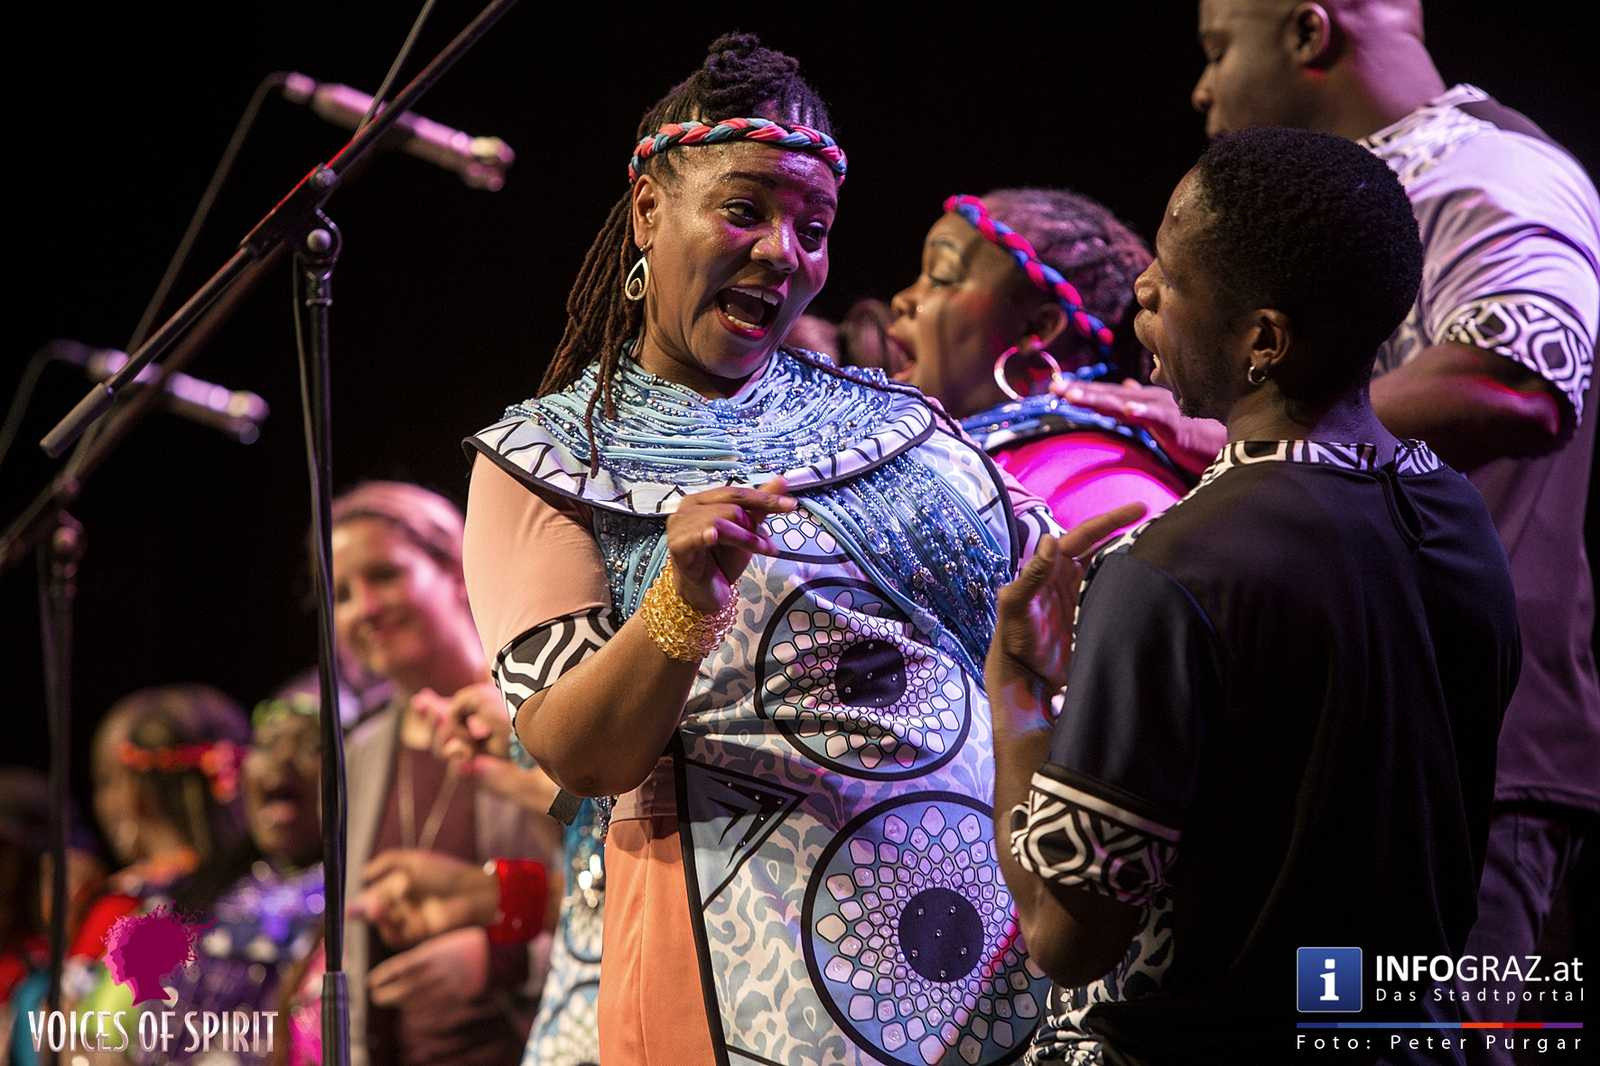 soweto gospel choir internationales chorfestival statdthalle graz voices of spirit eroeffnung festivals 2016 126